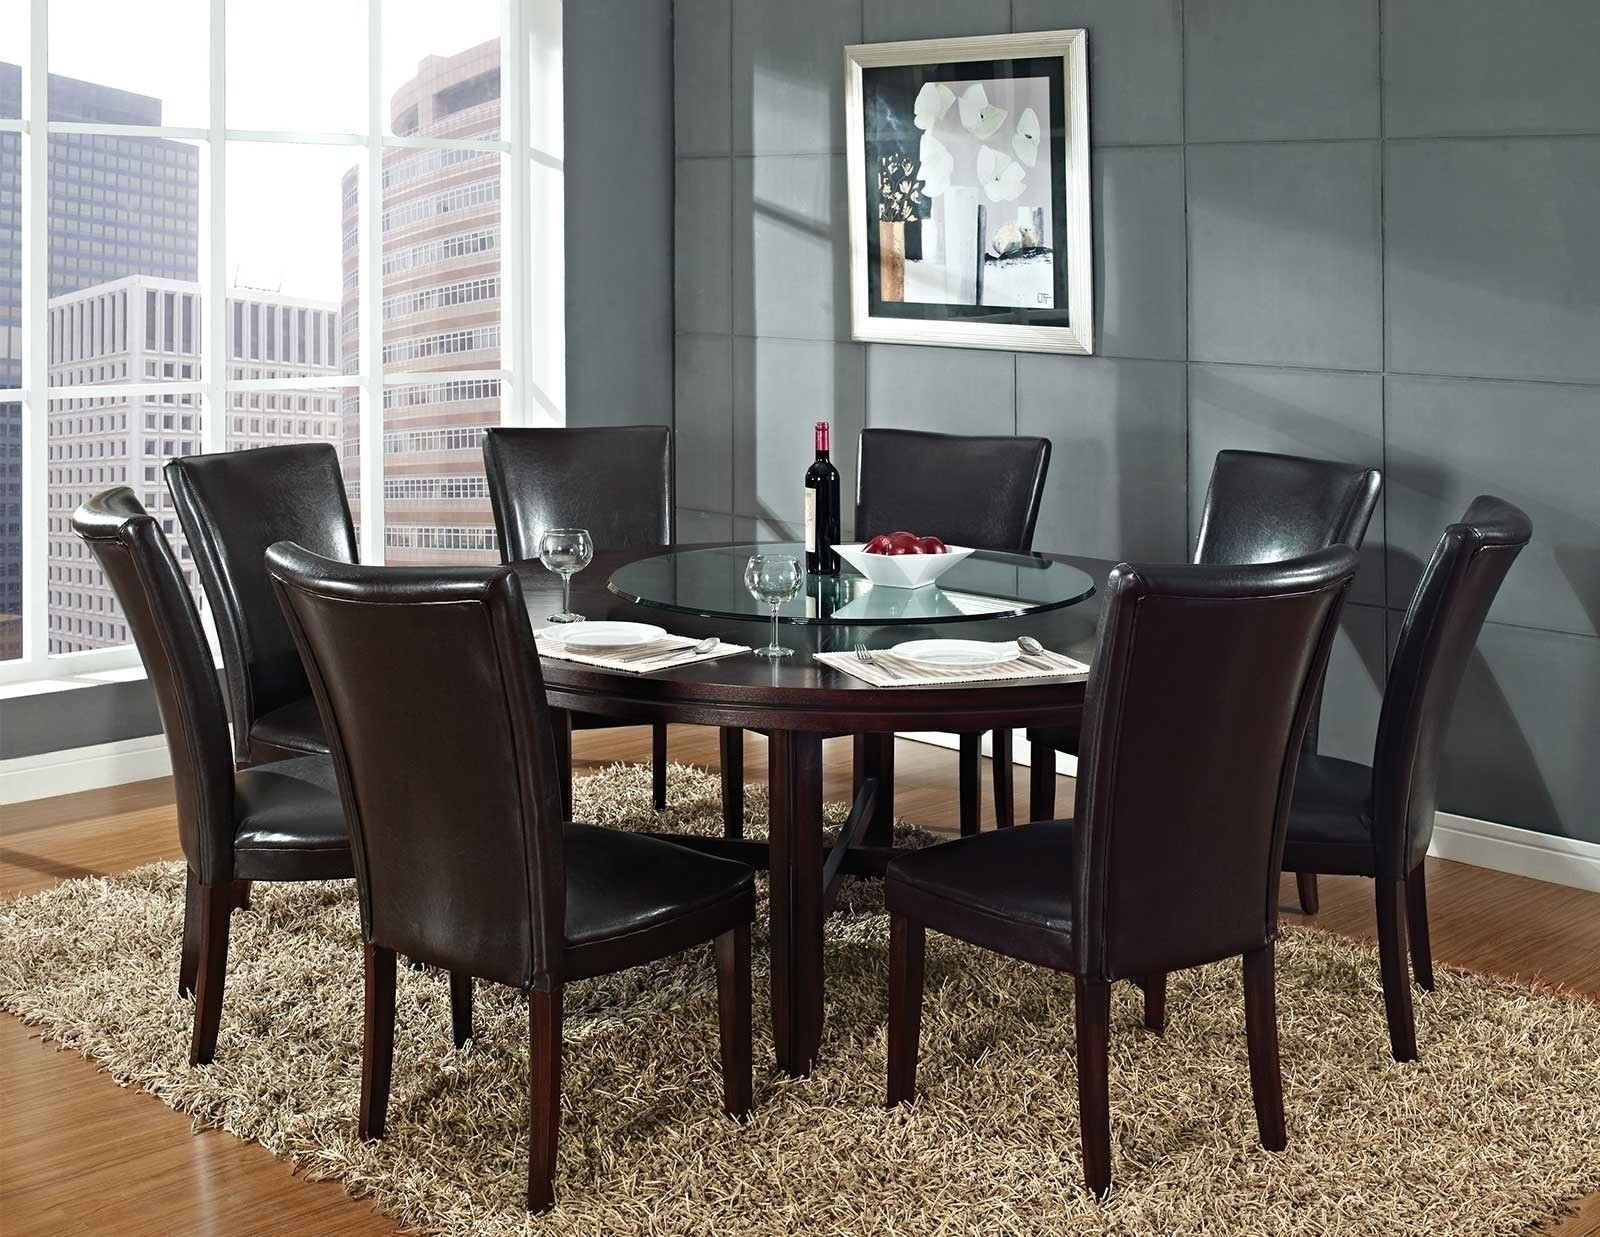 8 Seater Round Dining Table Sets • Table Setting Ideas Pertaining To Well Known 8 Seater Round Dining Table And Chairs (View 8 of 25)